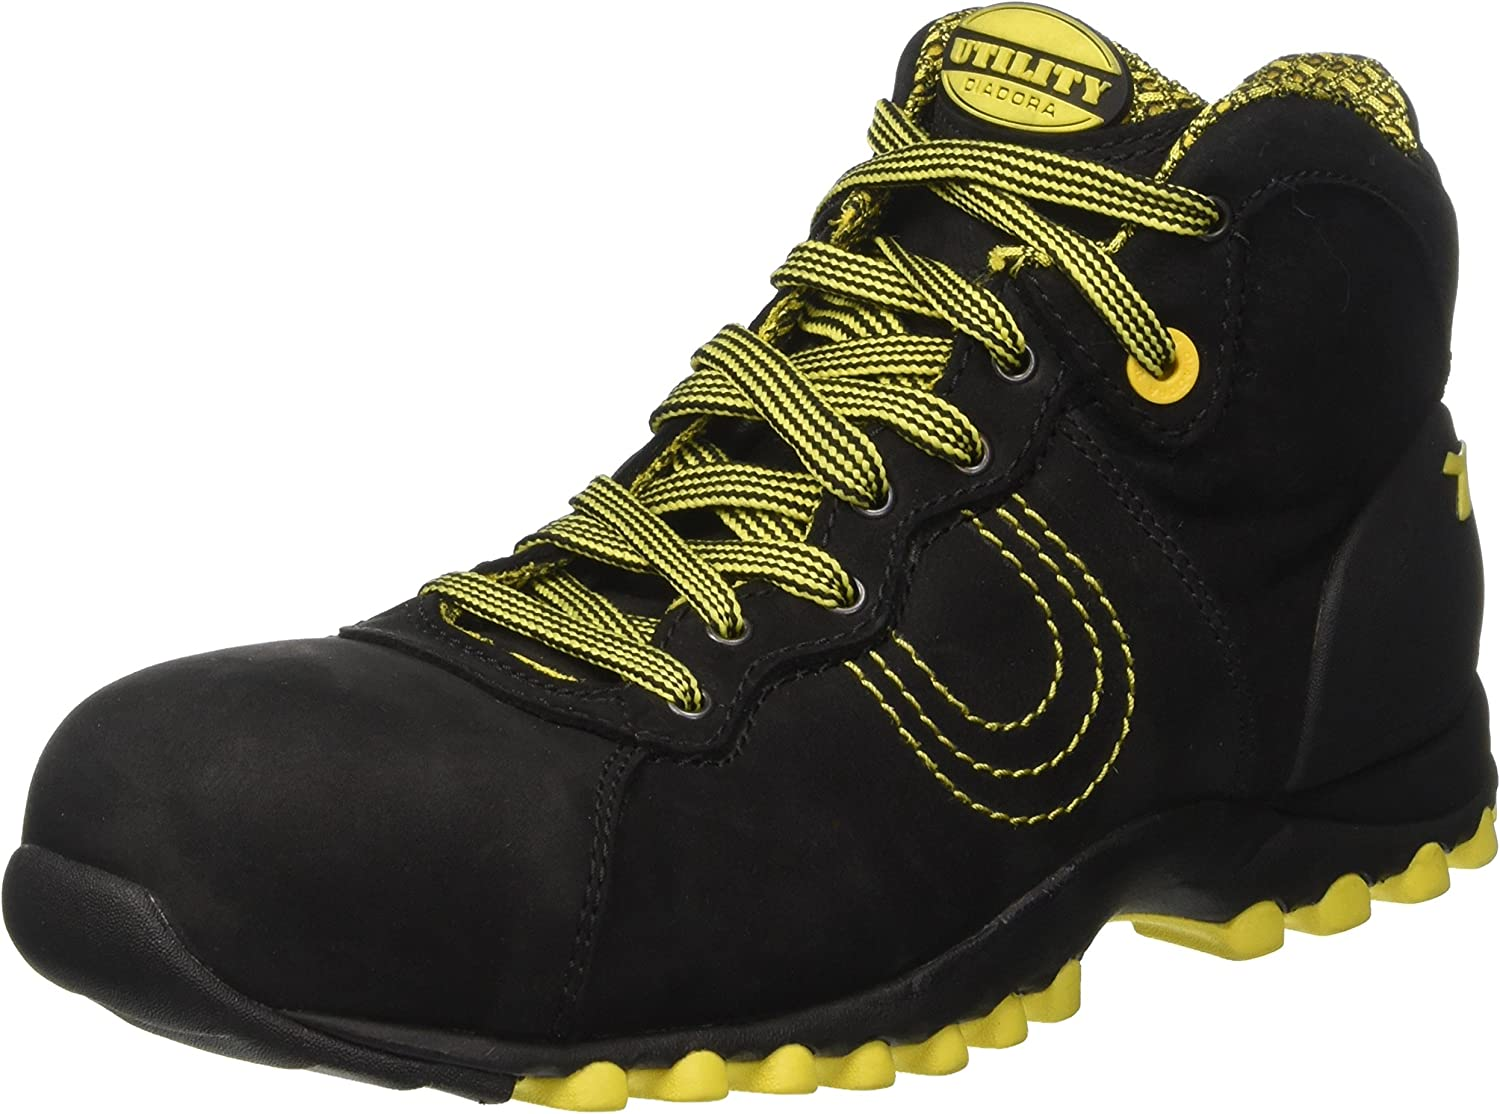 Diadora Match Hi-Beat S3 HRO Mens Safety Boots Black